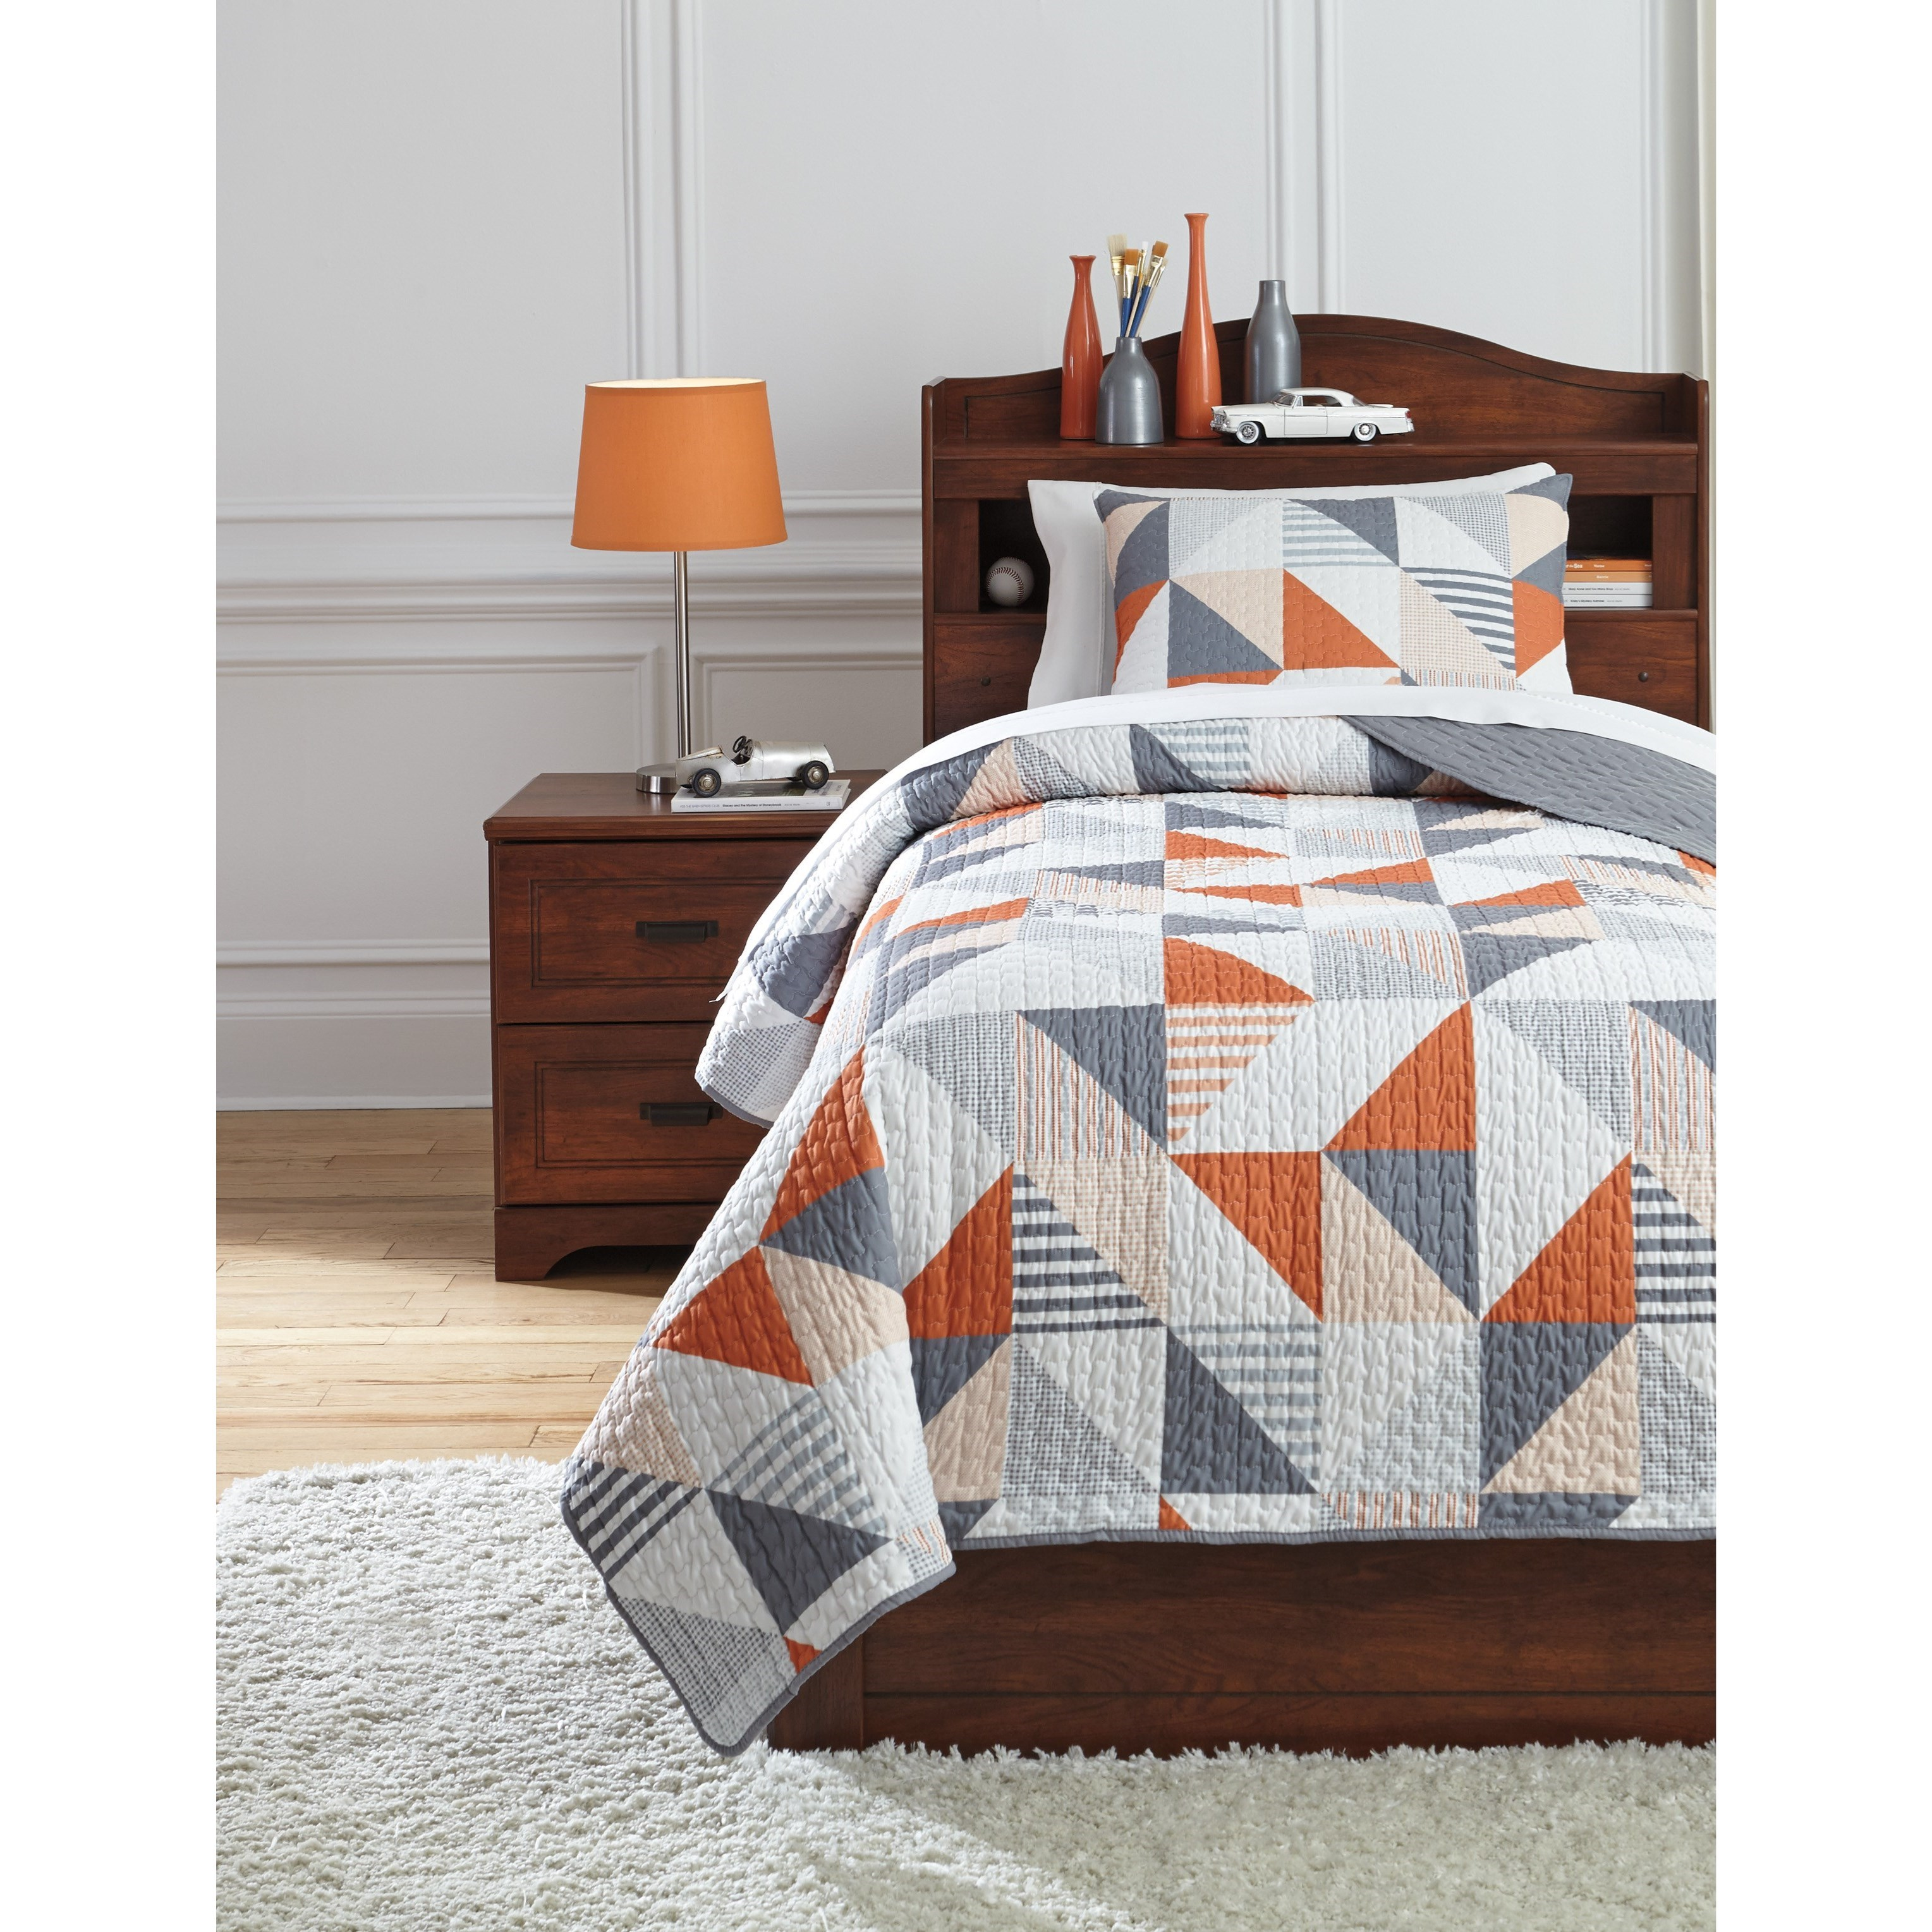 Bedding Sets Twin Layne Multi Coverlet Set by Signature Design by Ashley at Northeast Factory Direct